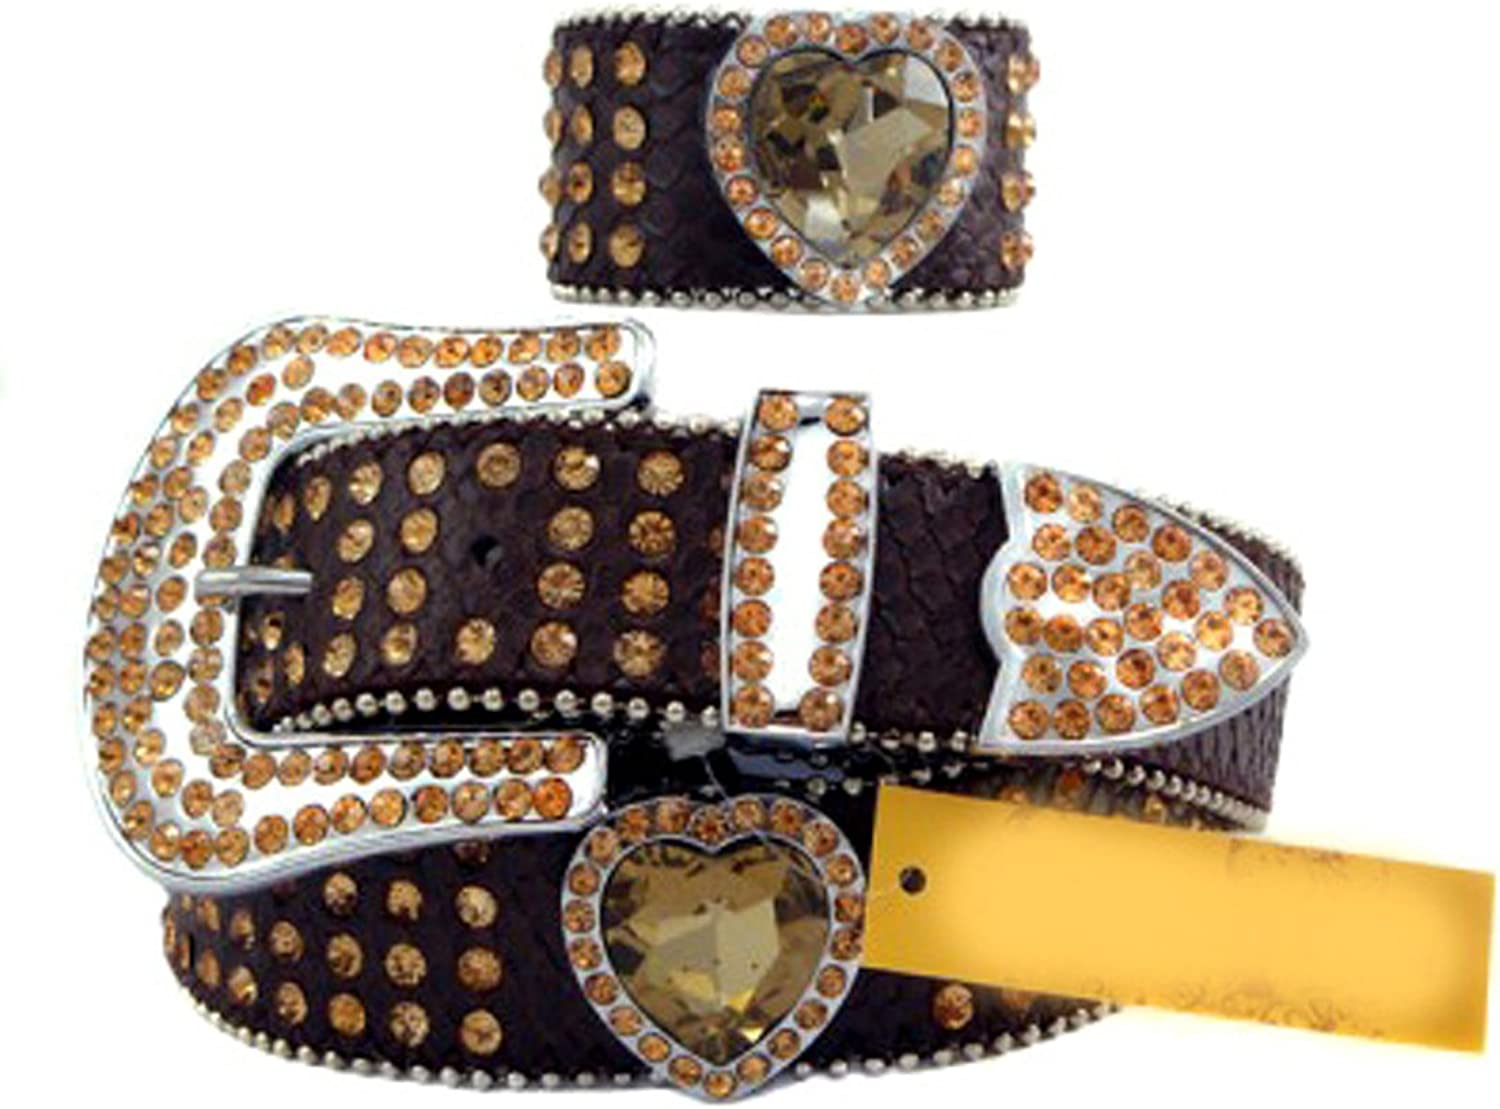 Chocolate Brown Leather Belt in a Crocodile Pattern, Decorated in High Quality Yellow Crystals, Size S M